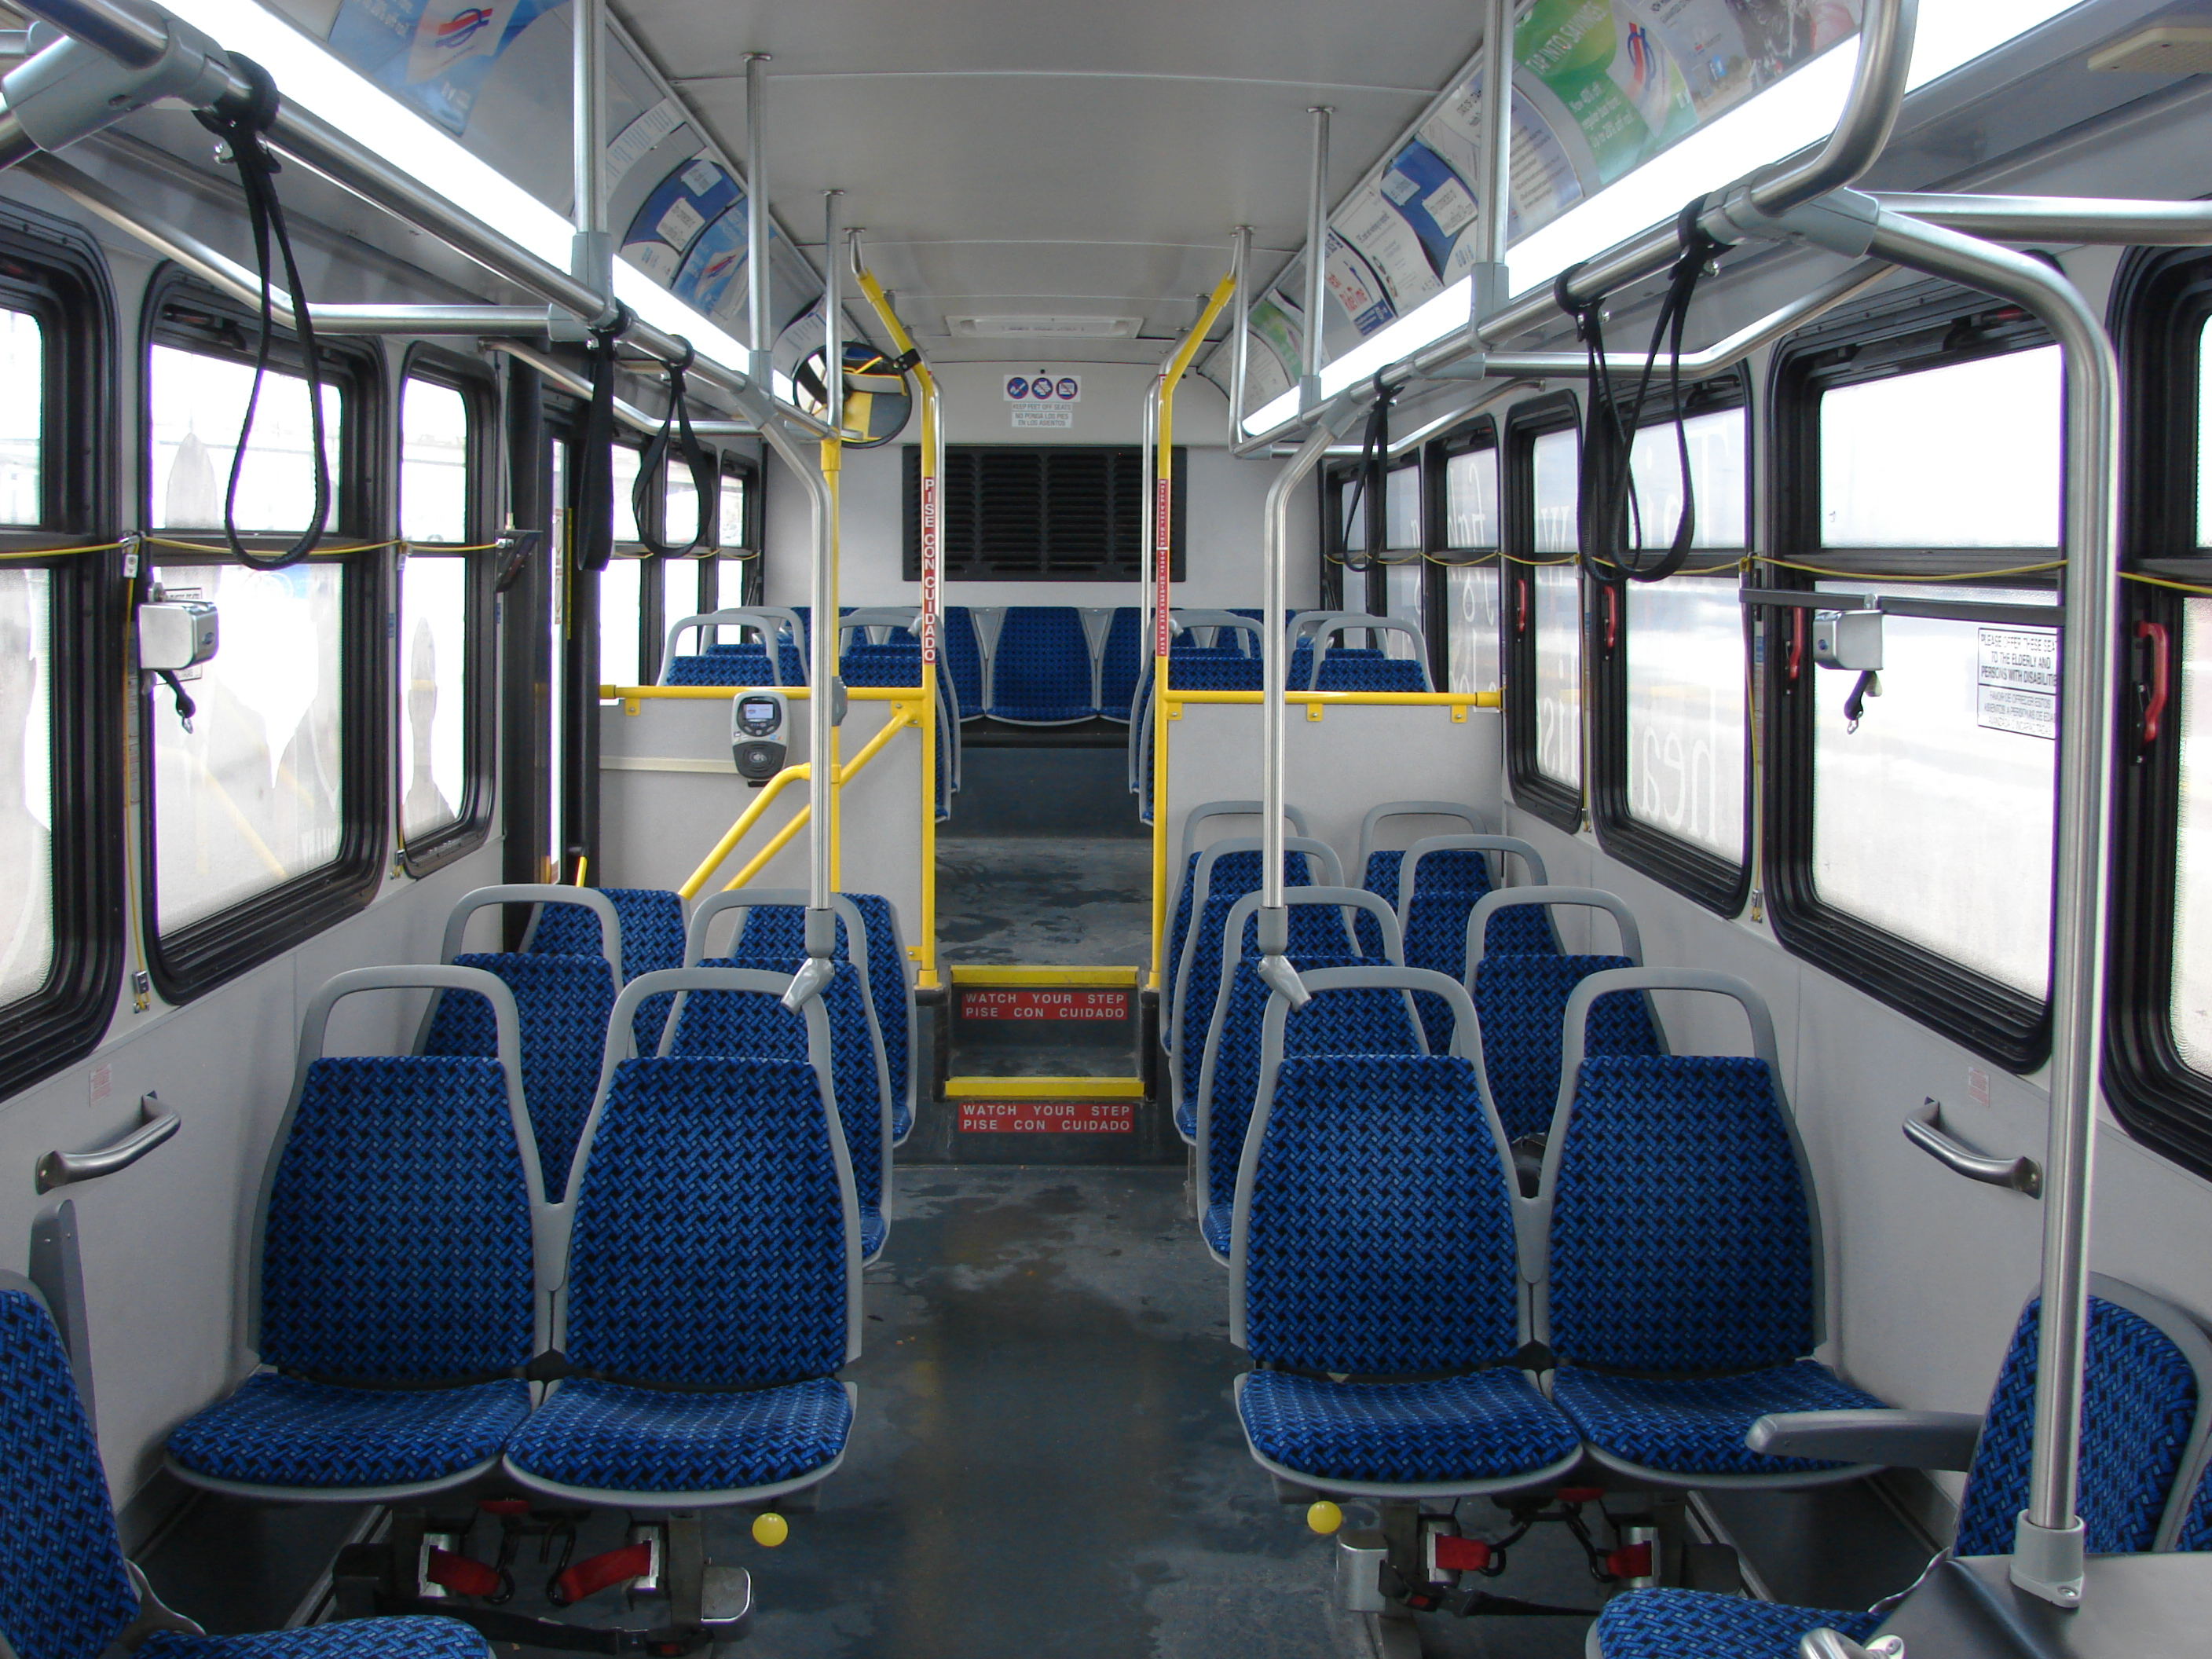 File Inside A Typical Uta Bus From The Front Jan 16 Jpg